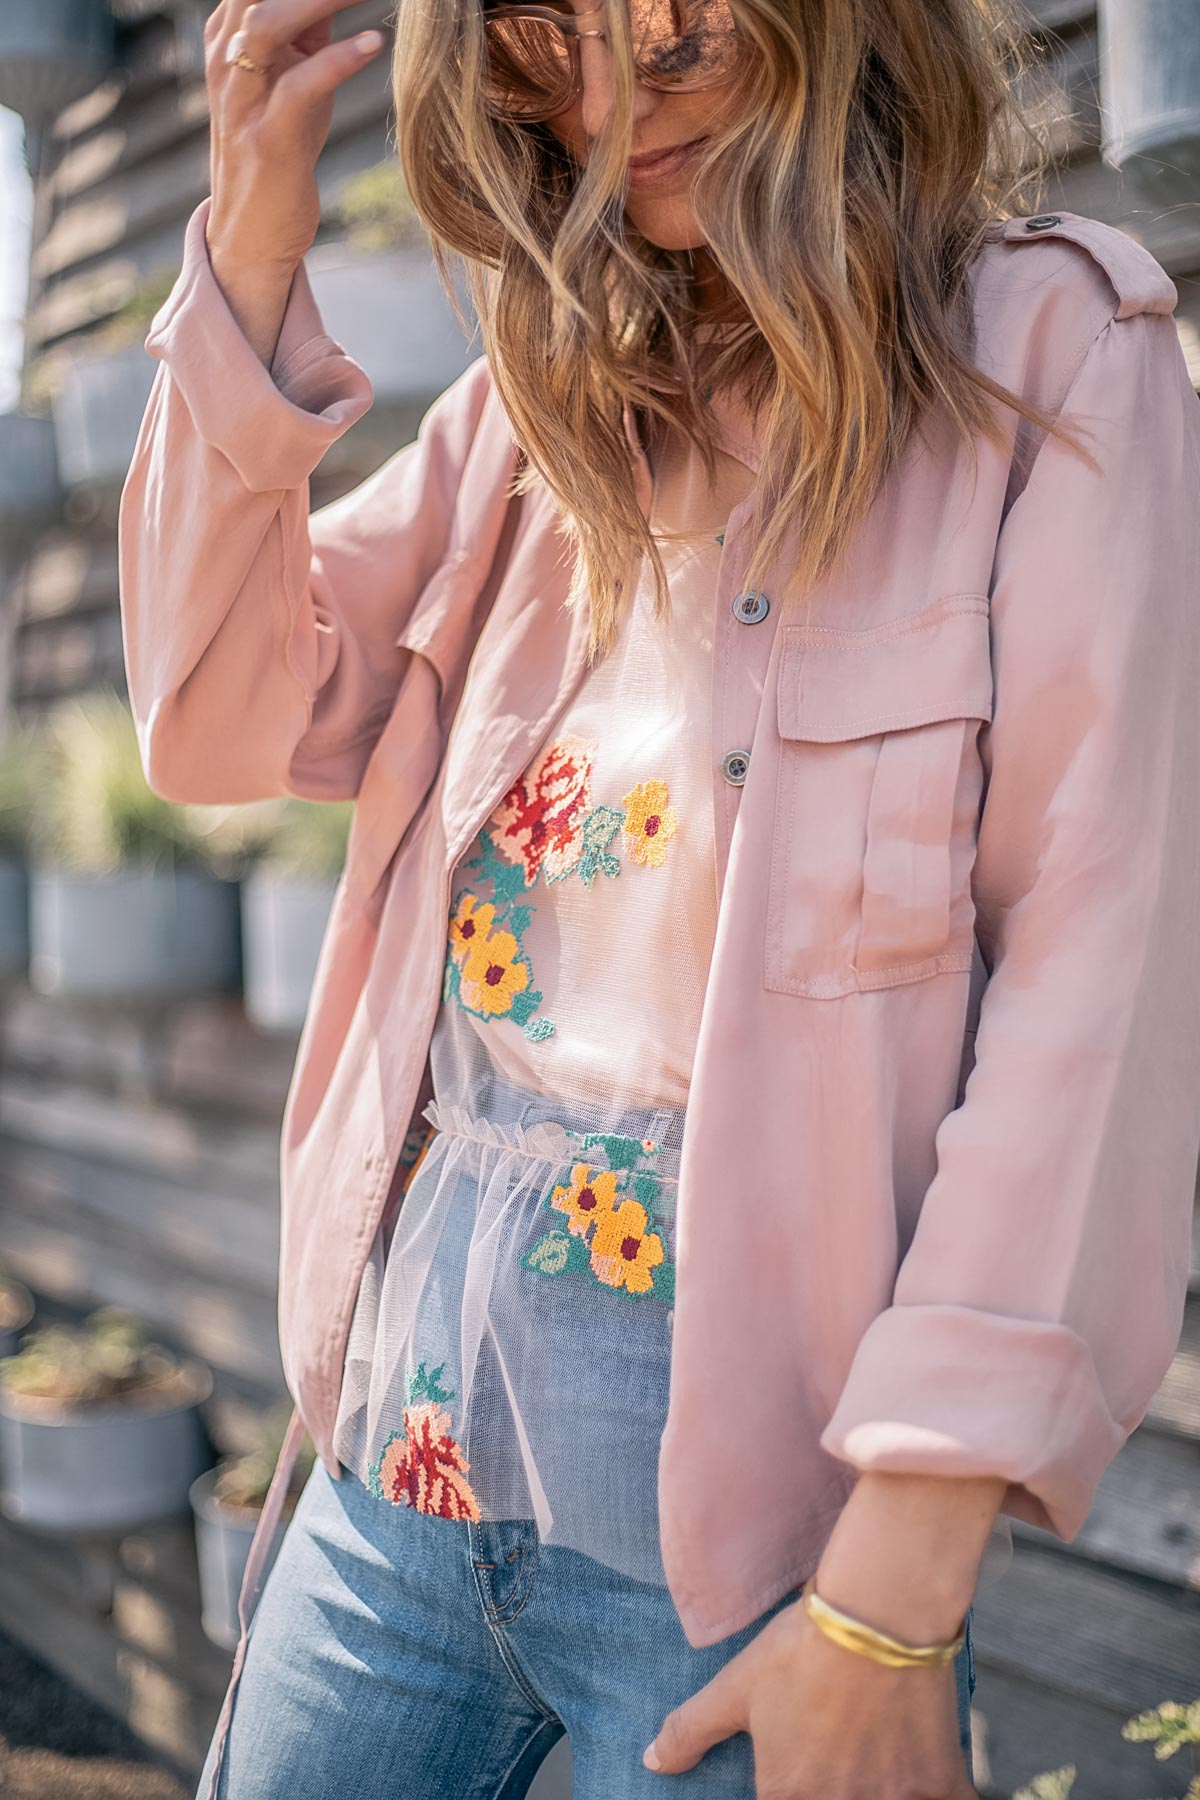 Jess Ann Kirby styles a spring look with the Rails anorak and Eva Franco Rhapsody floral top from Anthropologie